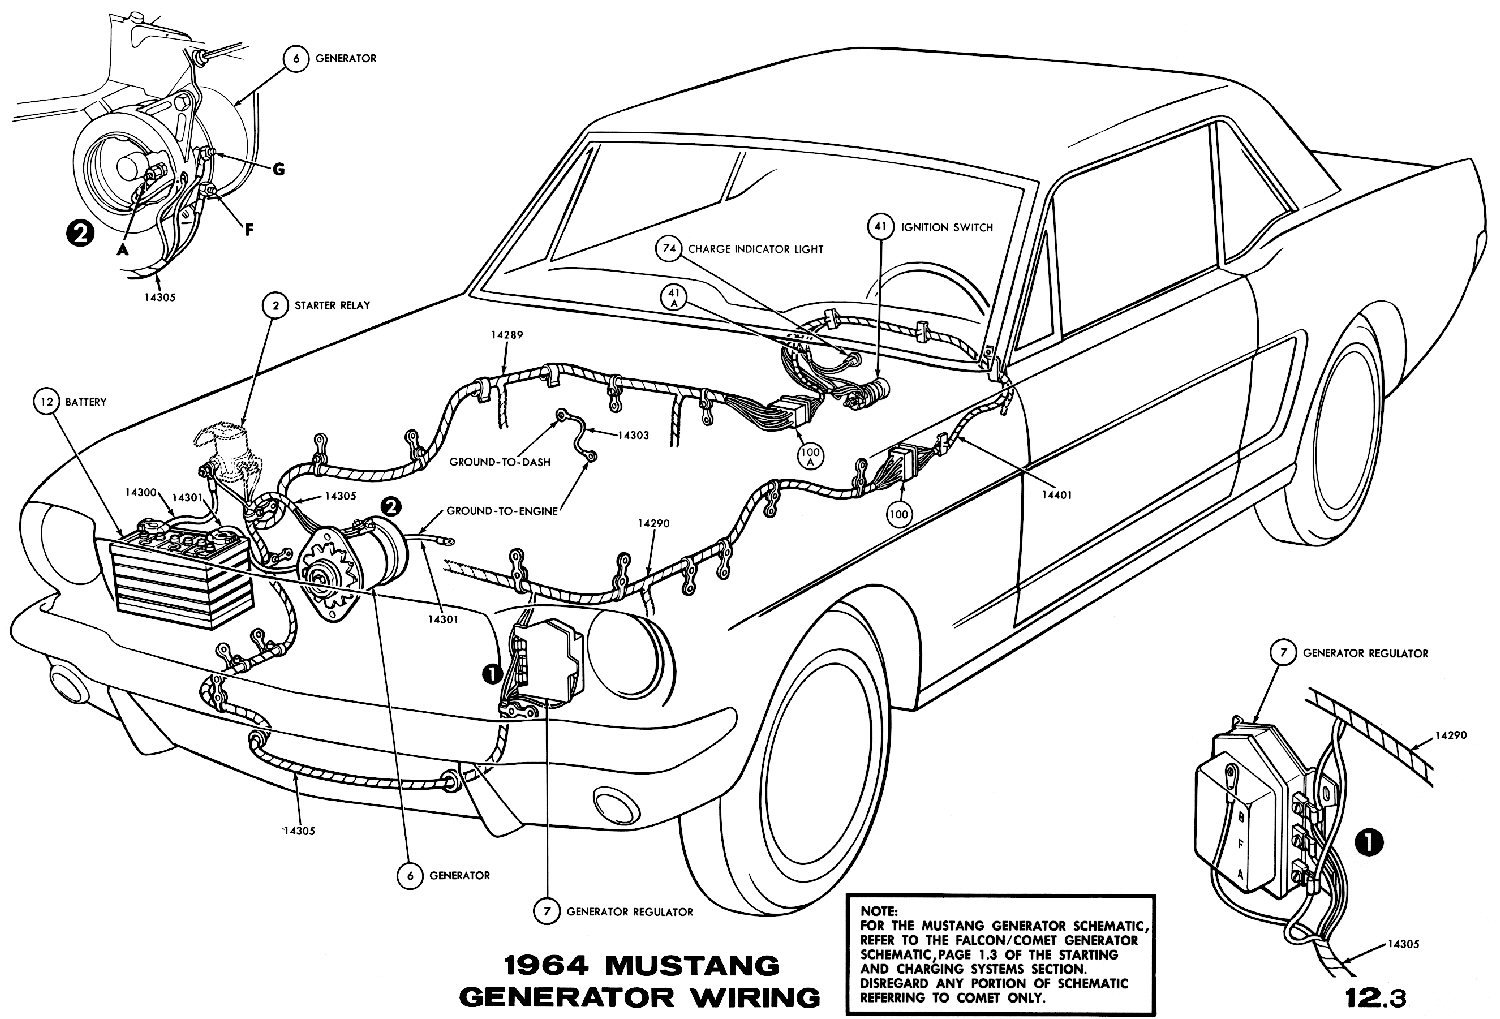 1964 Mustang Wiring Diagrams Average Joe Restoration 24 Volt Voltage Regulator Diagram Sm1964f Generator Pictorial Or Schematic